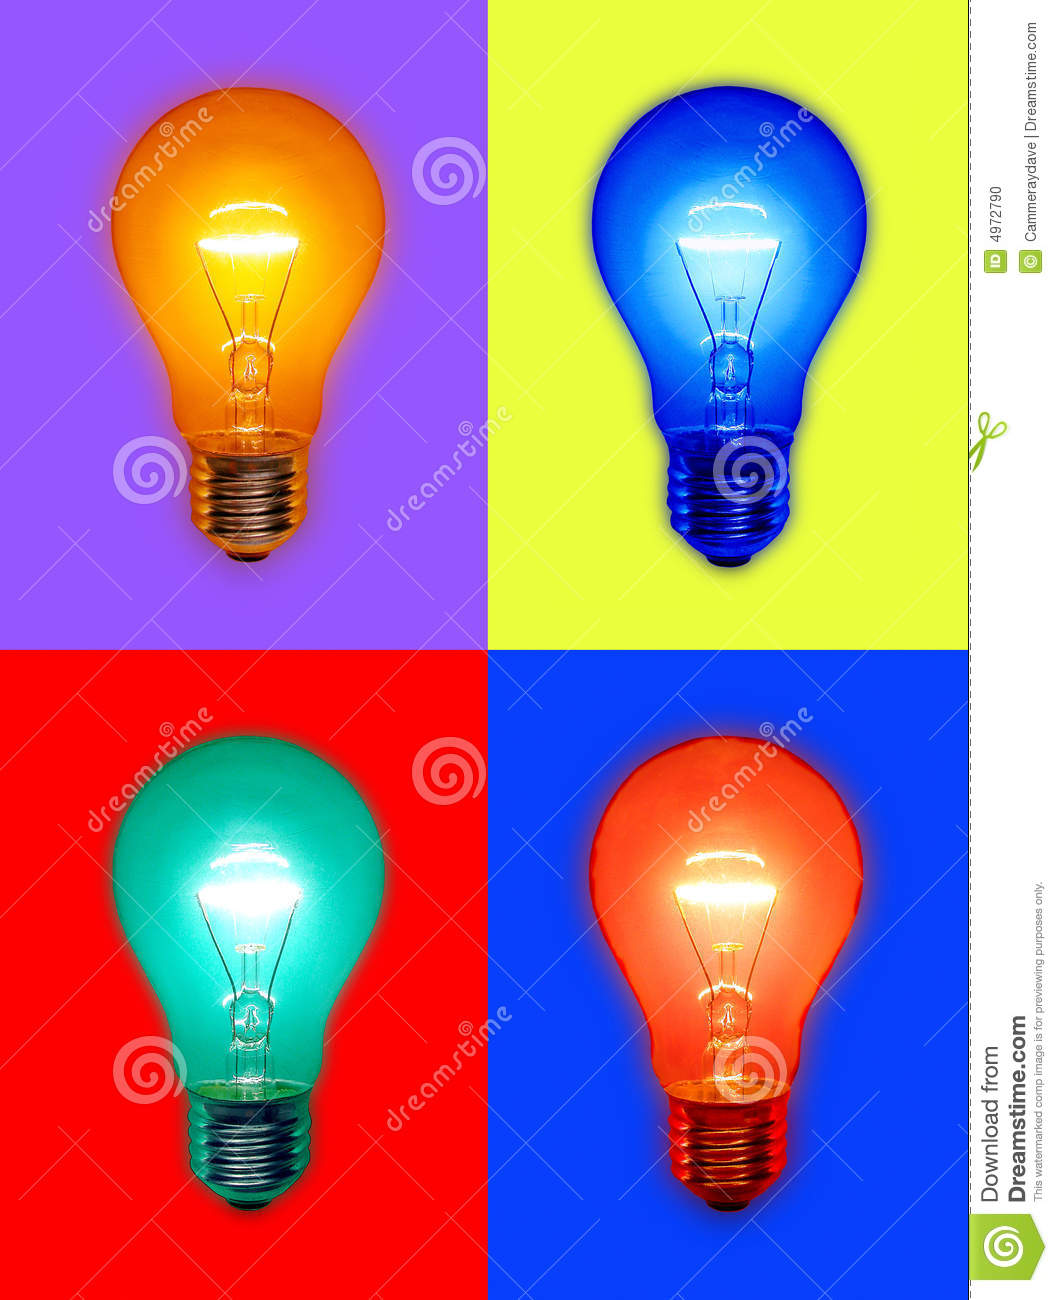 Colored Light Bulbs Stock Photo Image Of Glowing Colorful 4972790